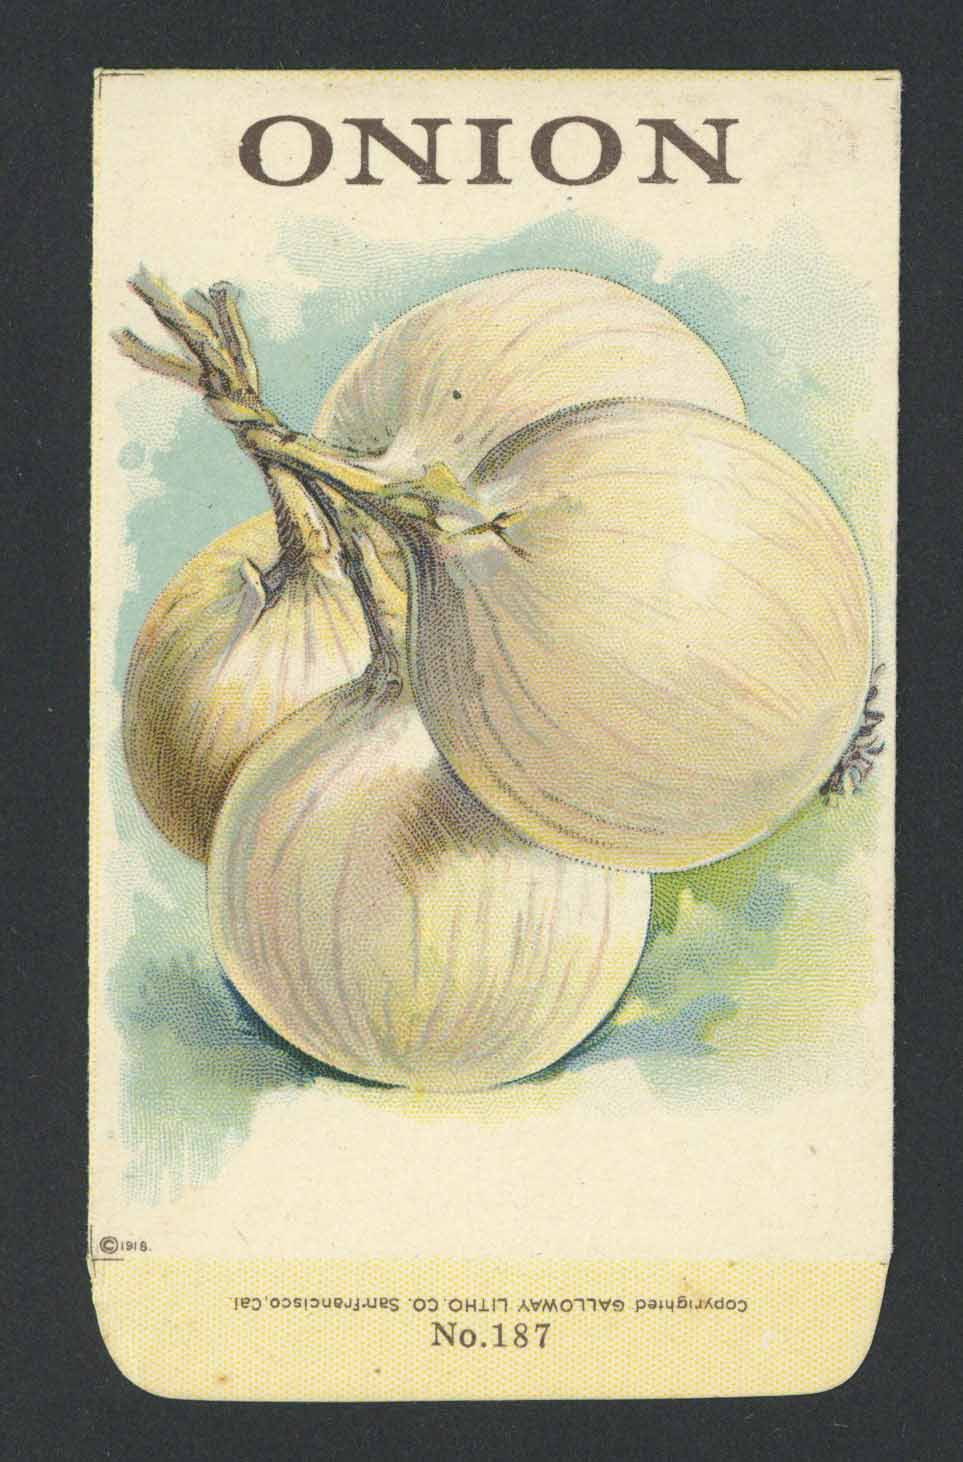 Onion Antique Stock Seed Packet